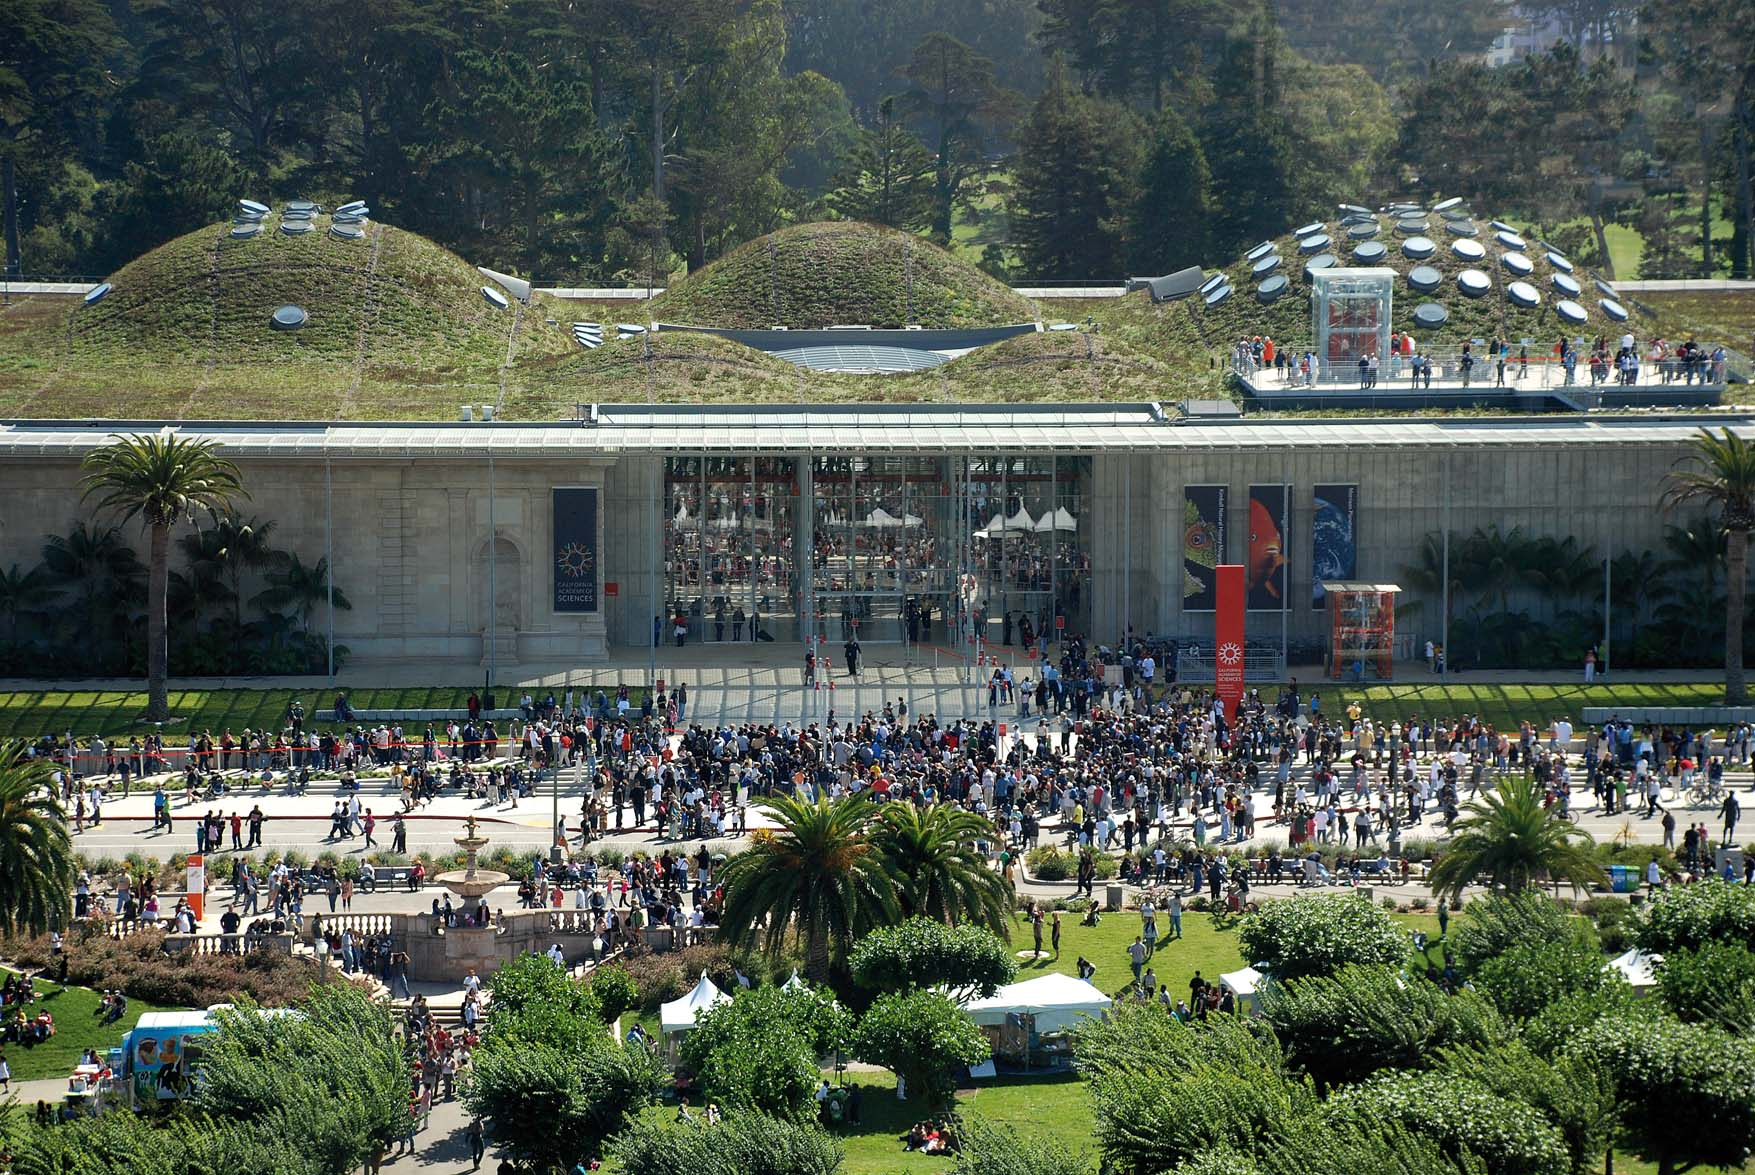 California Academy of Sciences (photo courtesy of RPBW Architects)